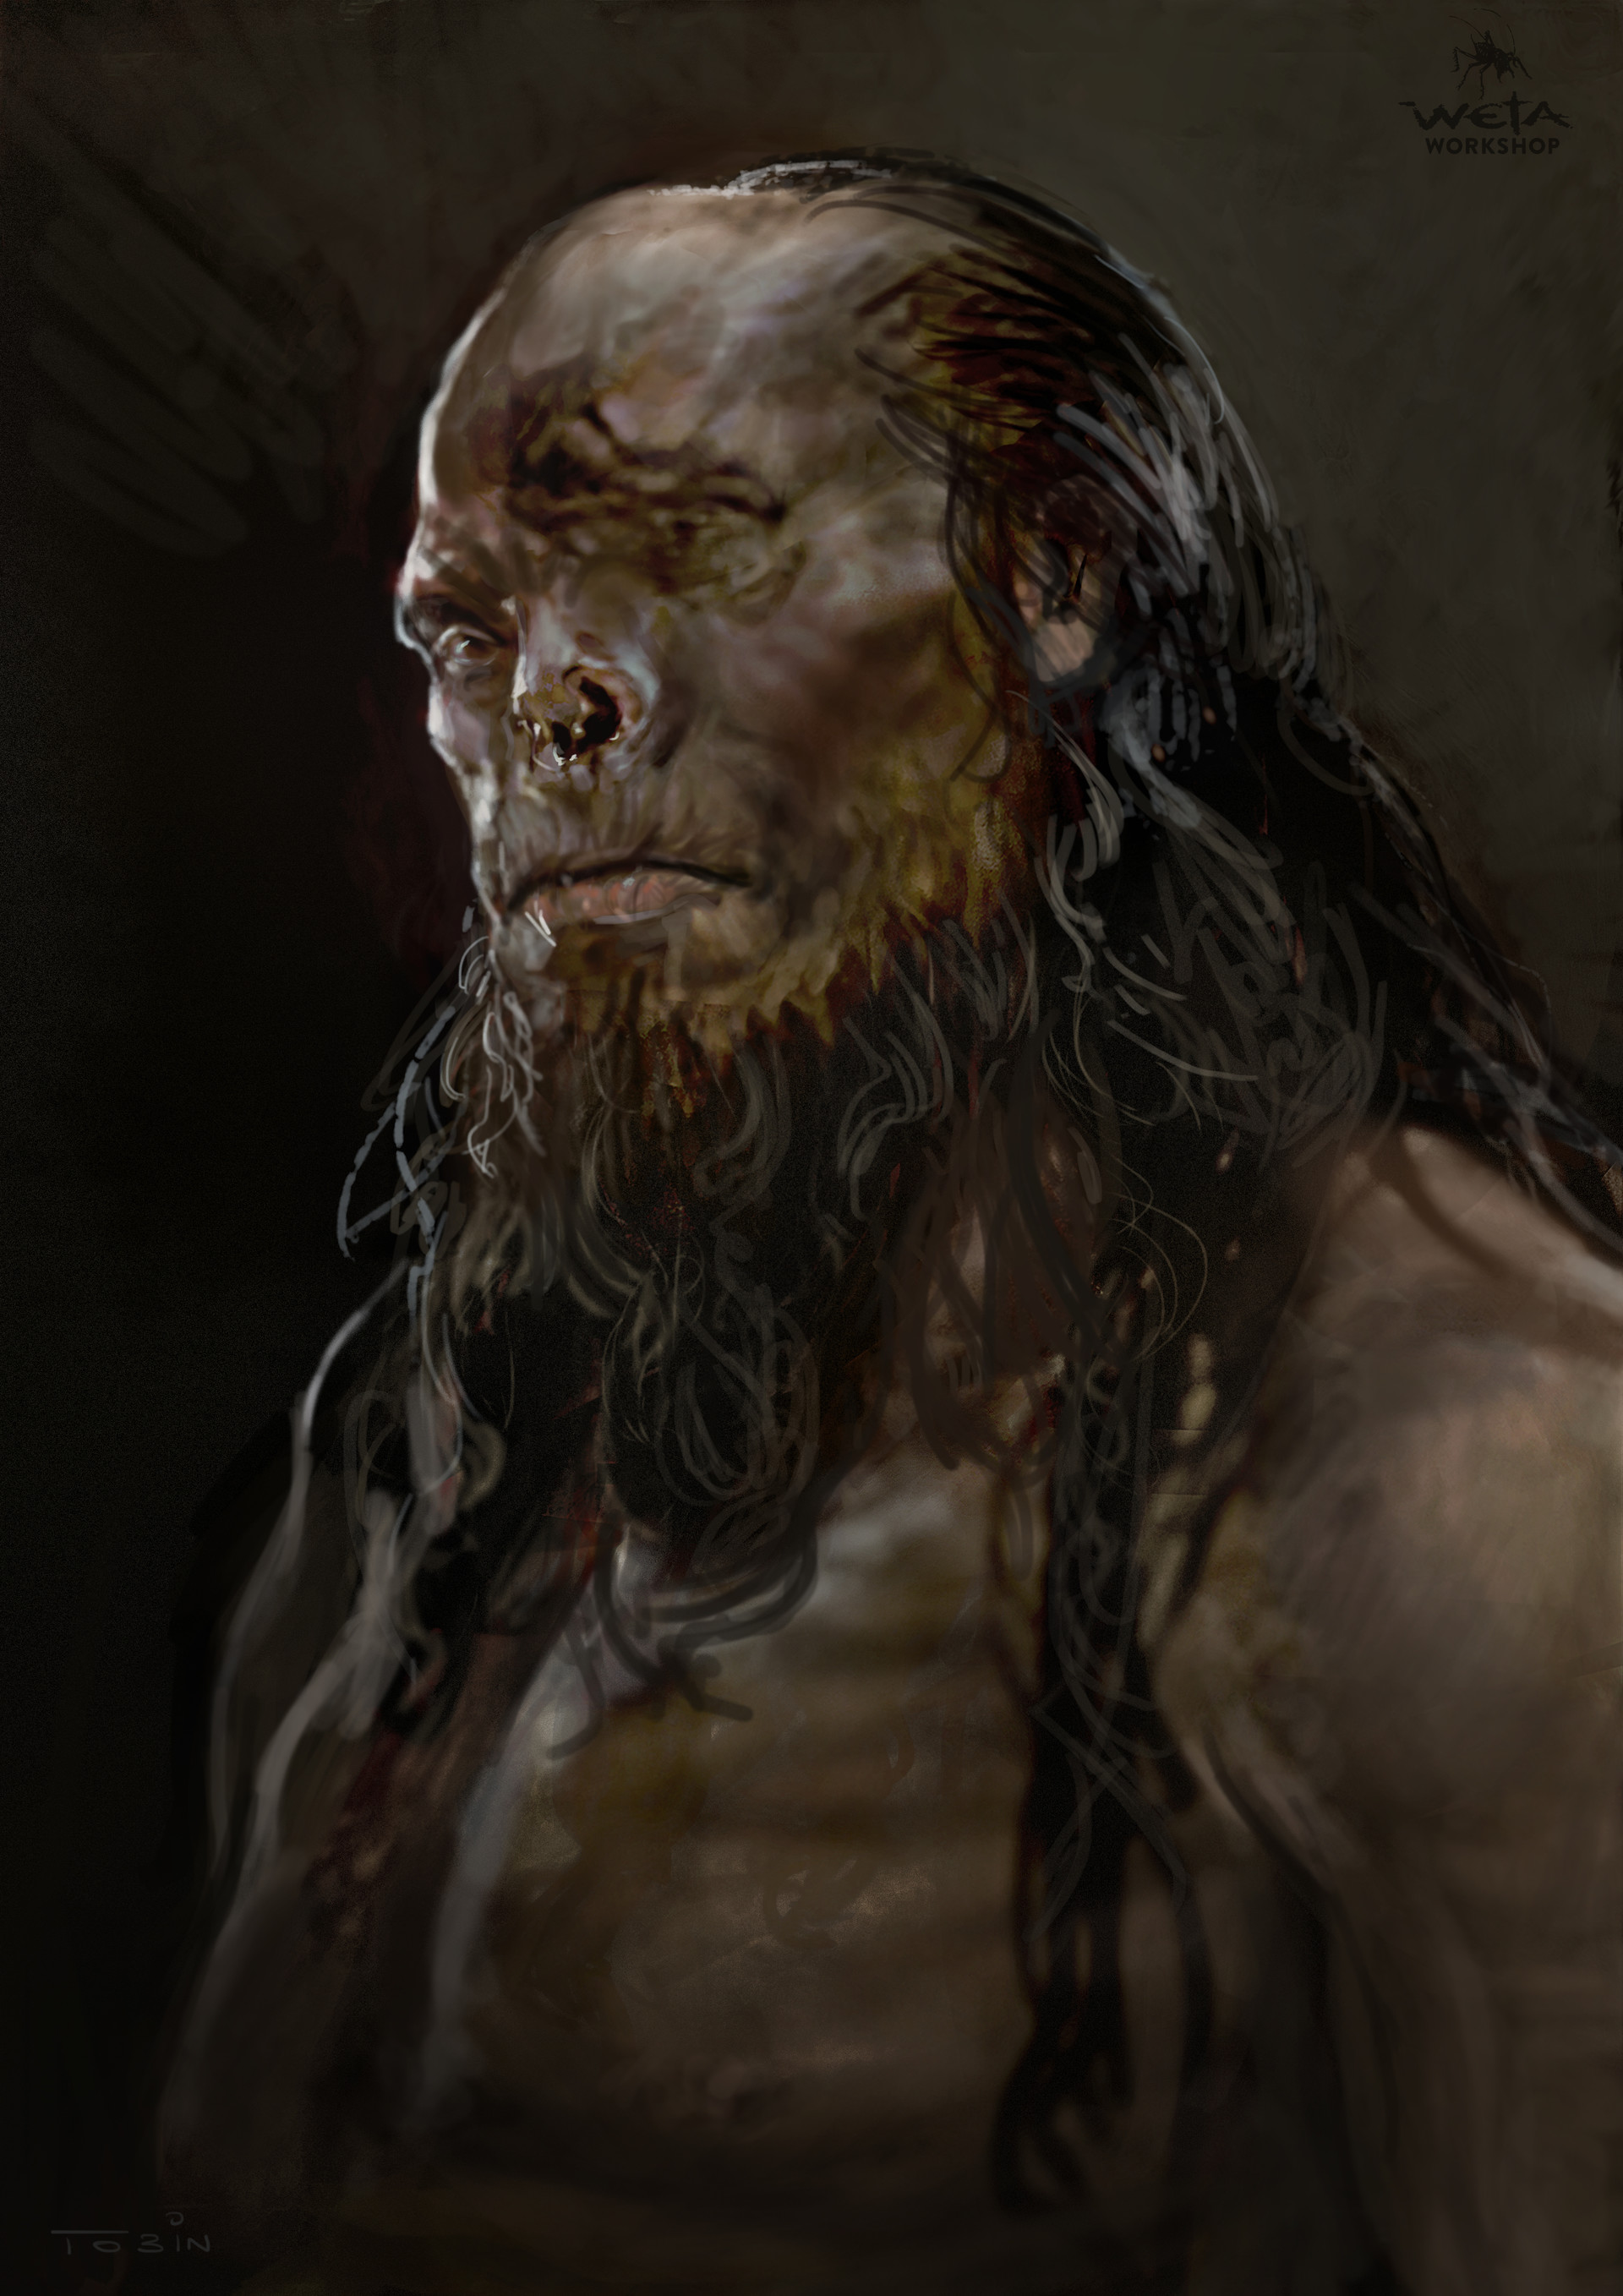 Weta workshop design studio weta workshop design studio cyclops